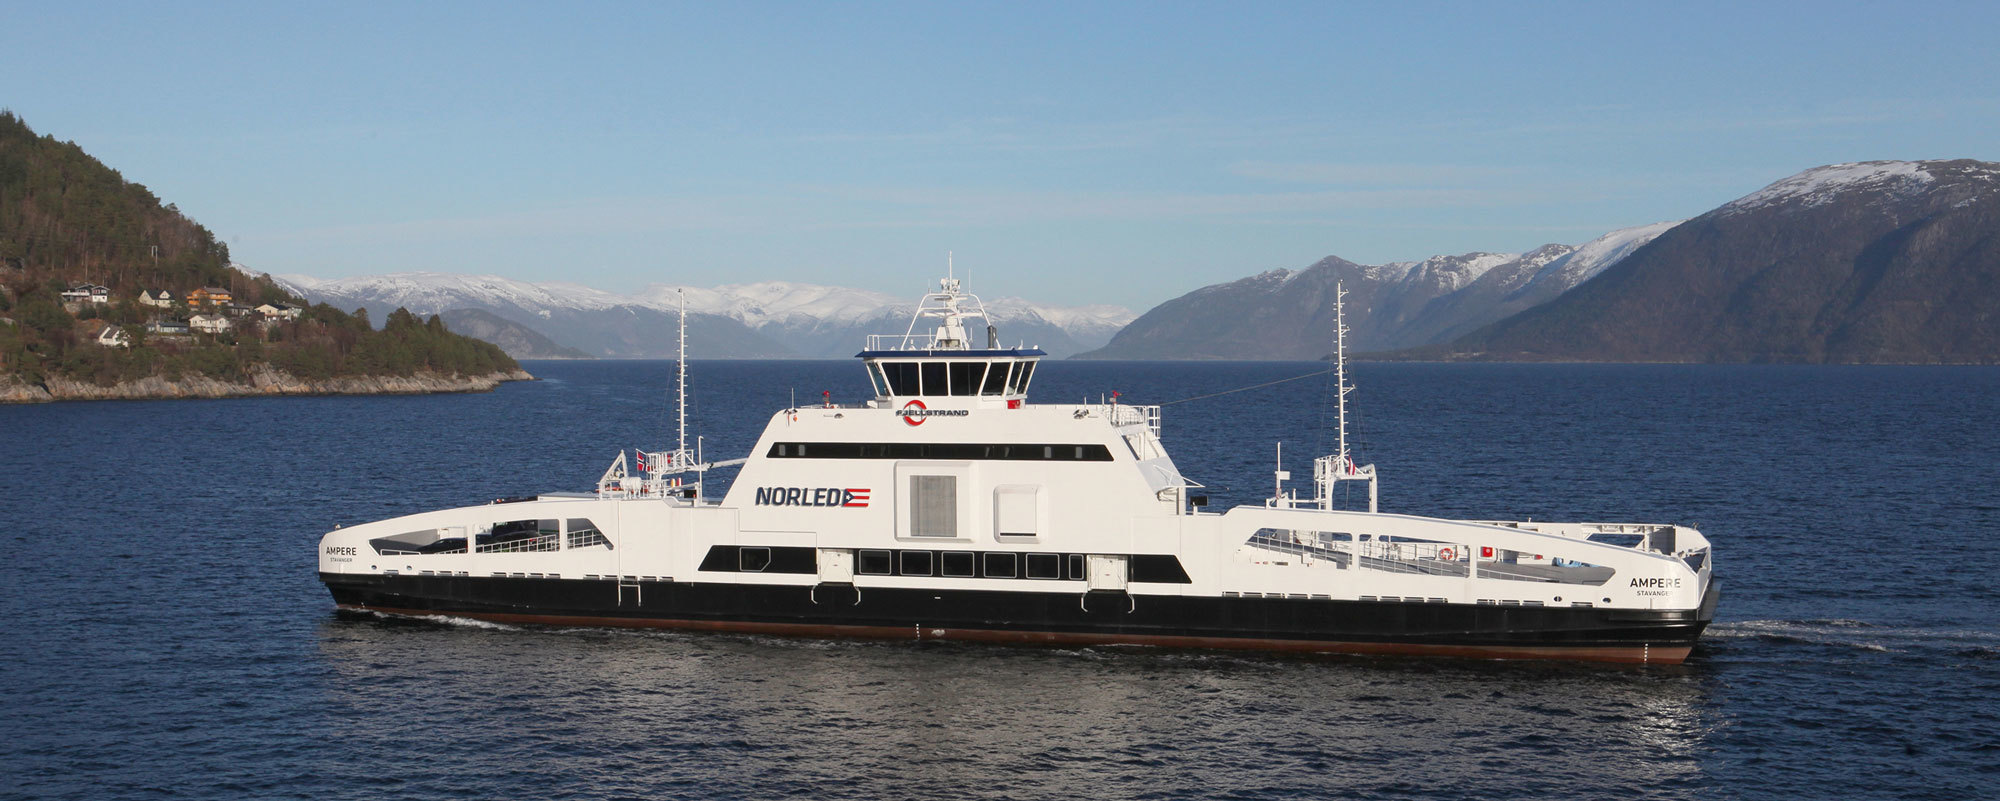 Europe Takes First Steps in Electrifying World's Shipping Fleets